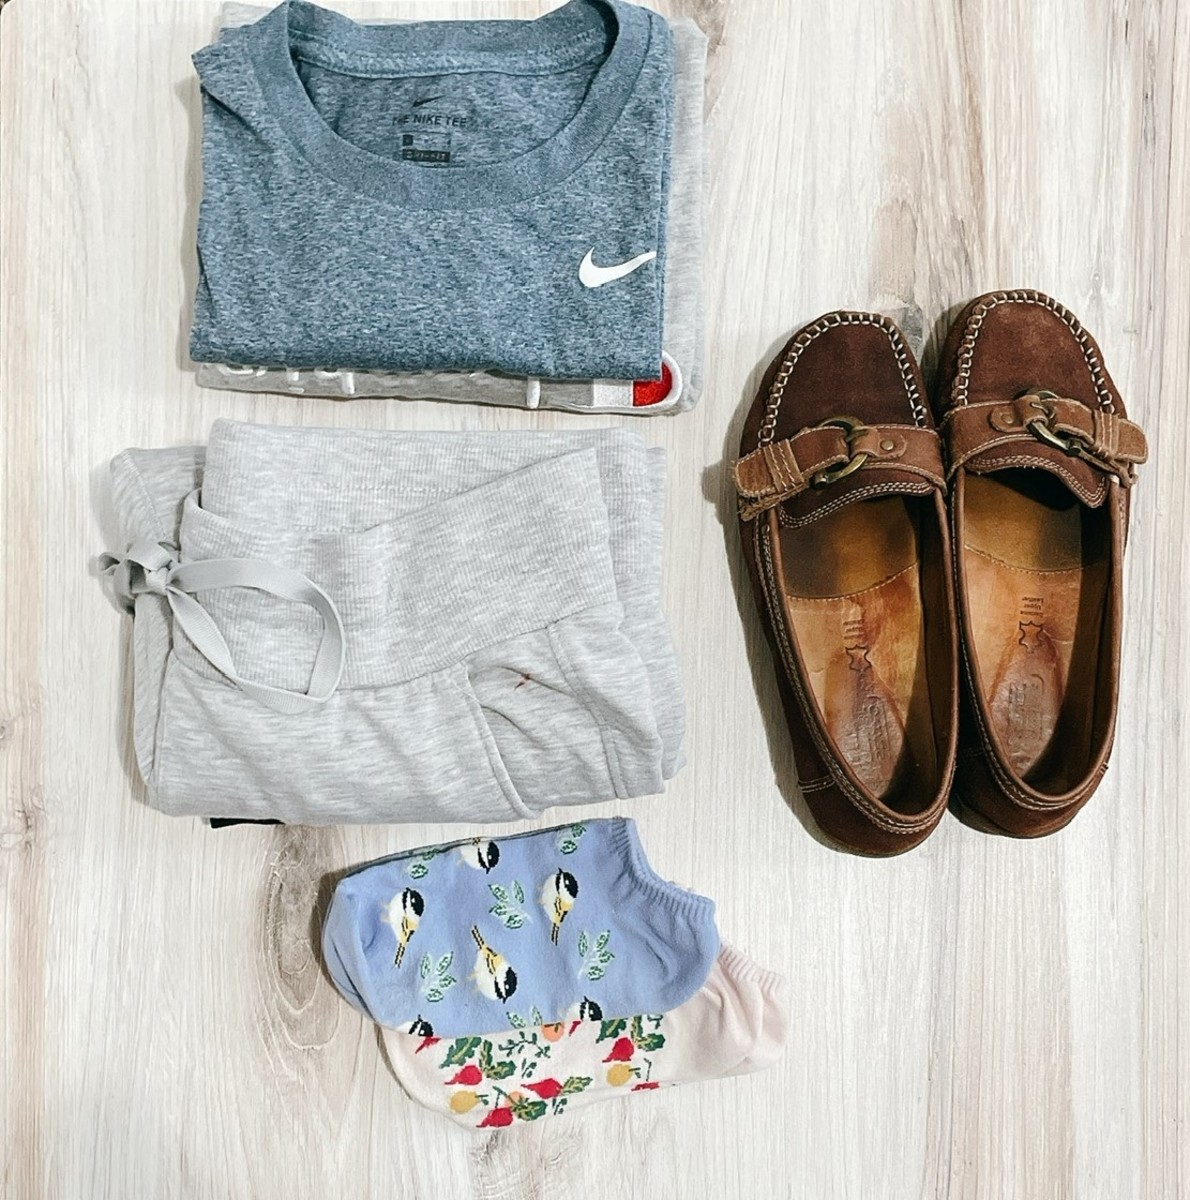 For a long-haul flight, I carry extra clean shirts and pants so I can change after 5–6 hours on the flight. As soon as I'm seated, I will change my sneakers to flat shoes or fresh socks.